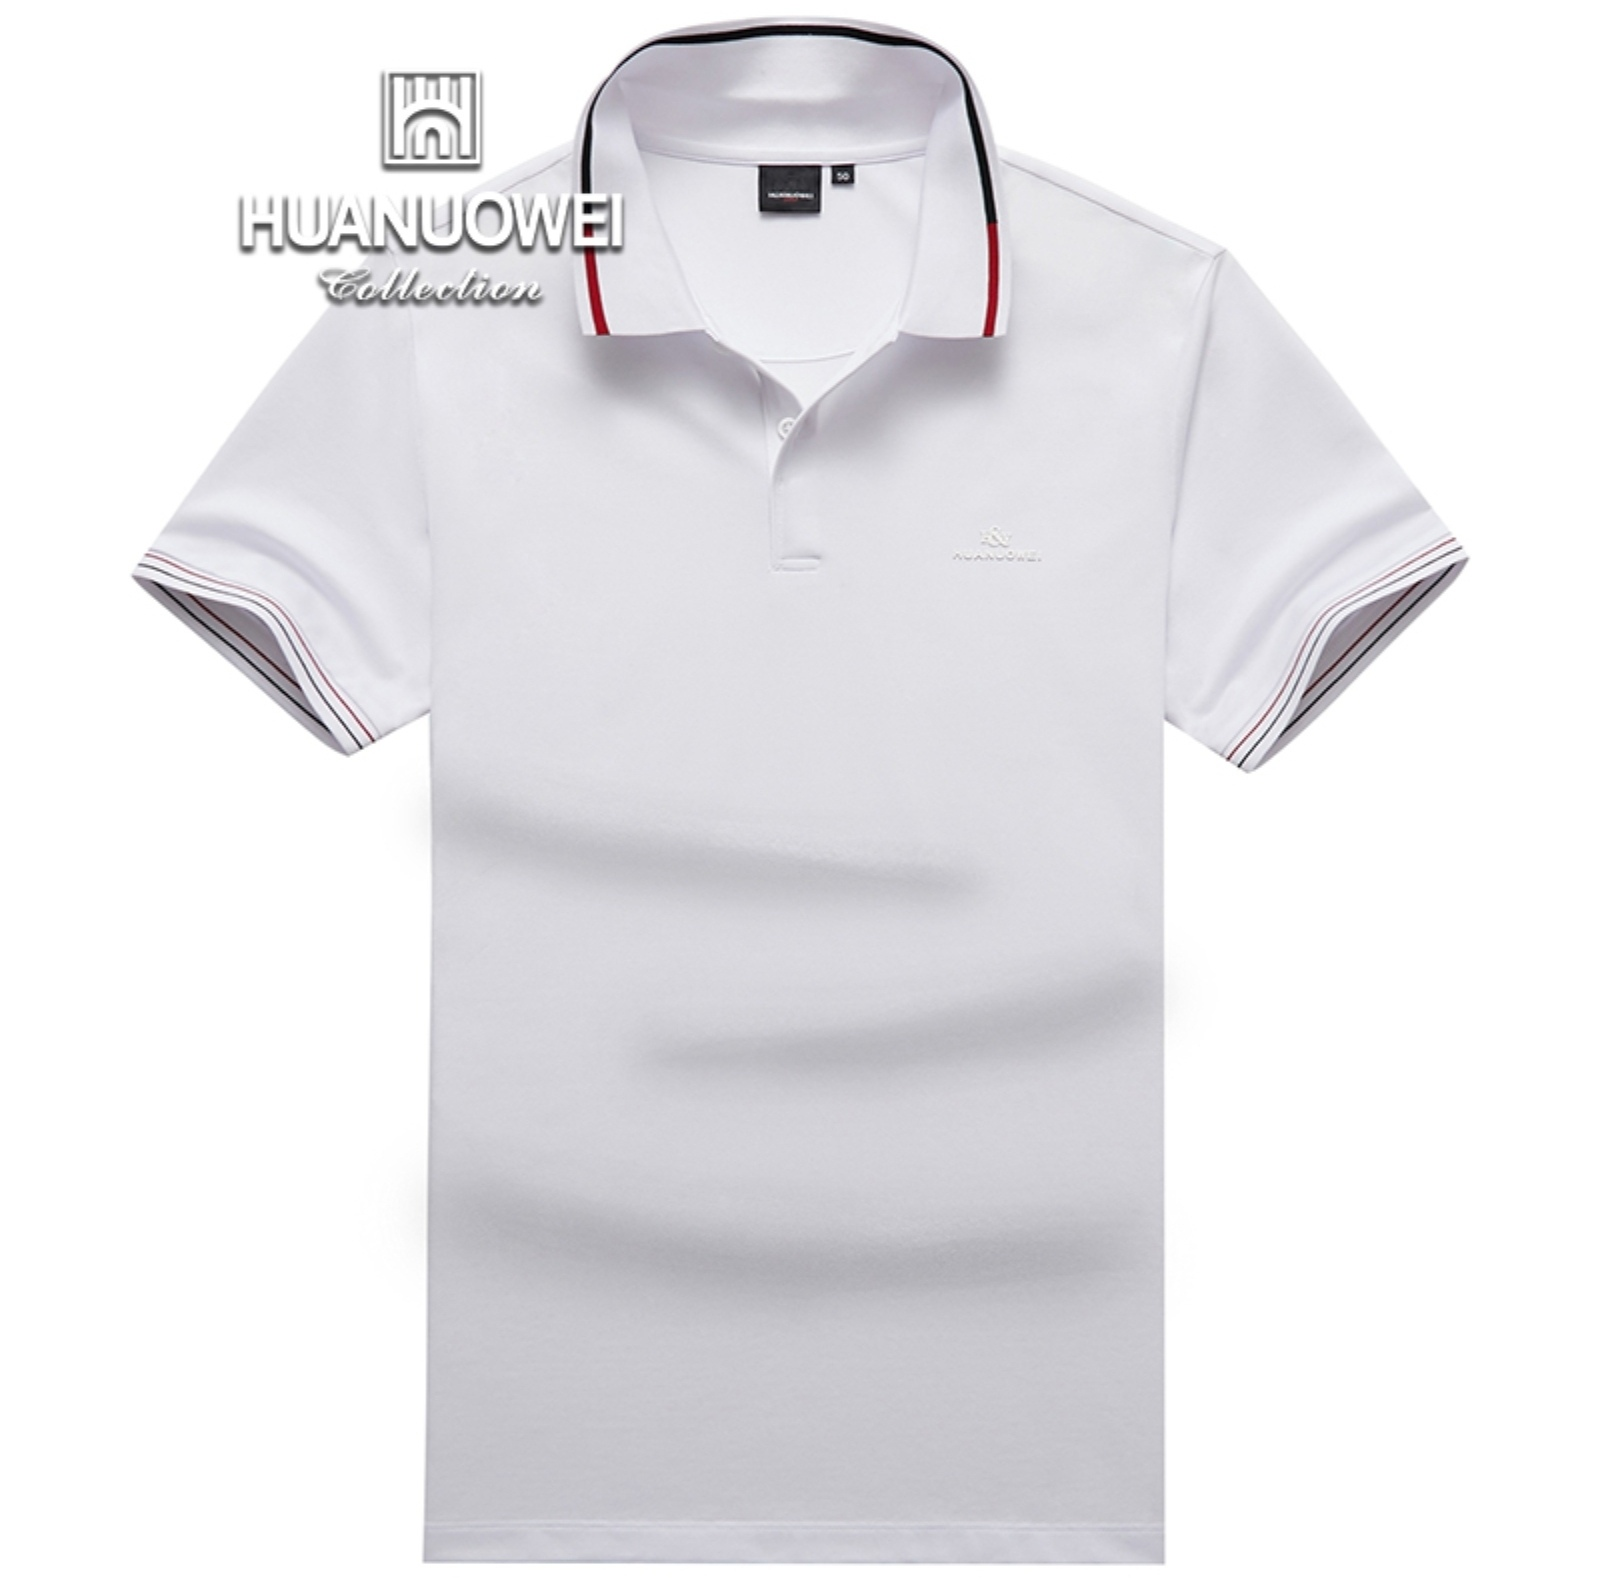 Warwick polo shirt mens short sleeve T-shirt middle age Lapel three dimensional printing solid color loose business leisure fashion